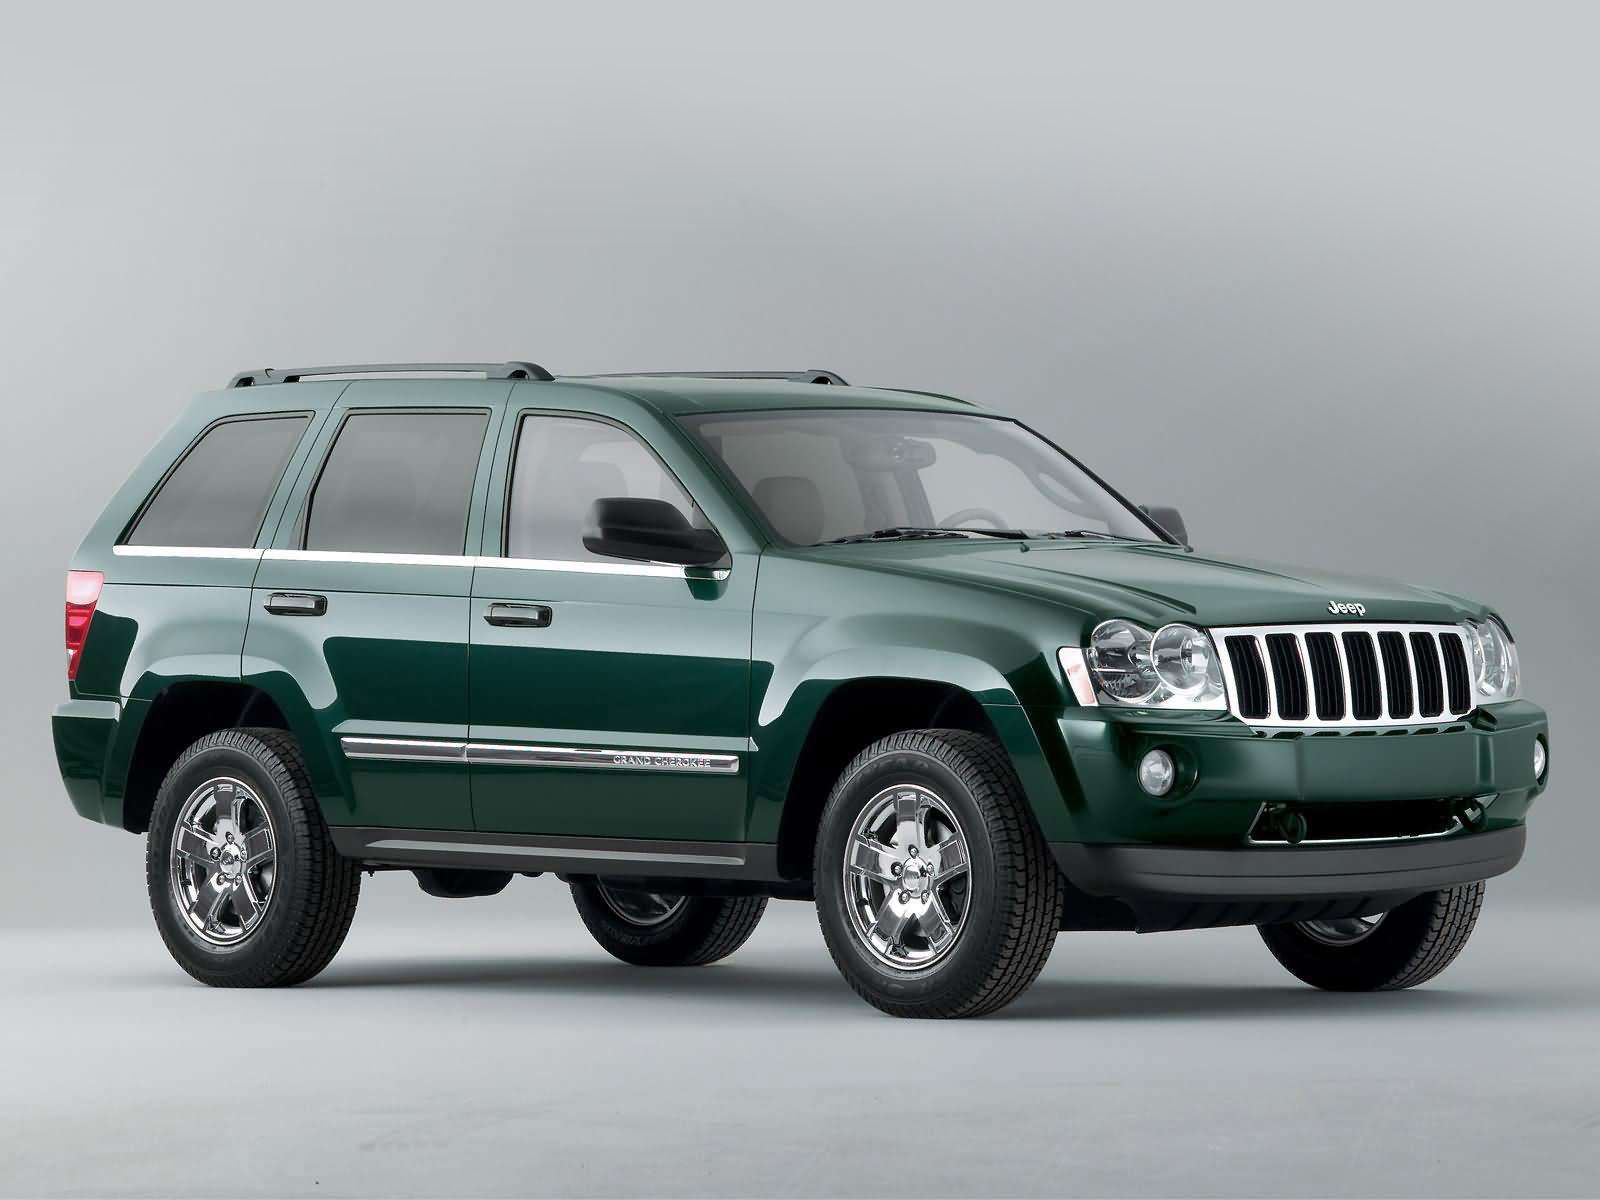 2005 jeep grand cherokee 5 7 limited car wallpaper auto trends magazine. Black Bedroom Furniture Sets. Home Design Ideas